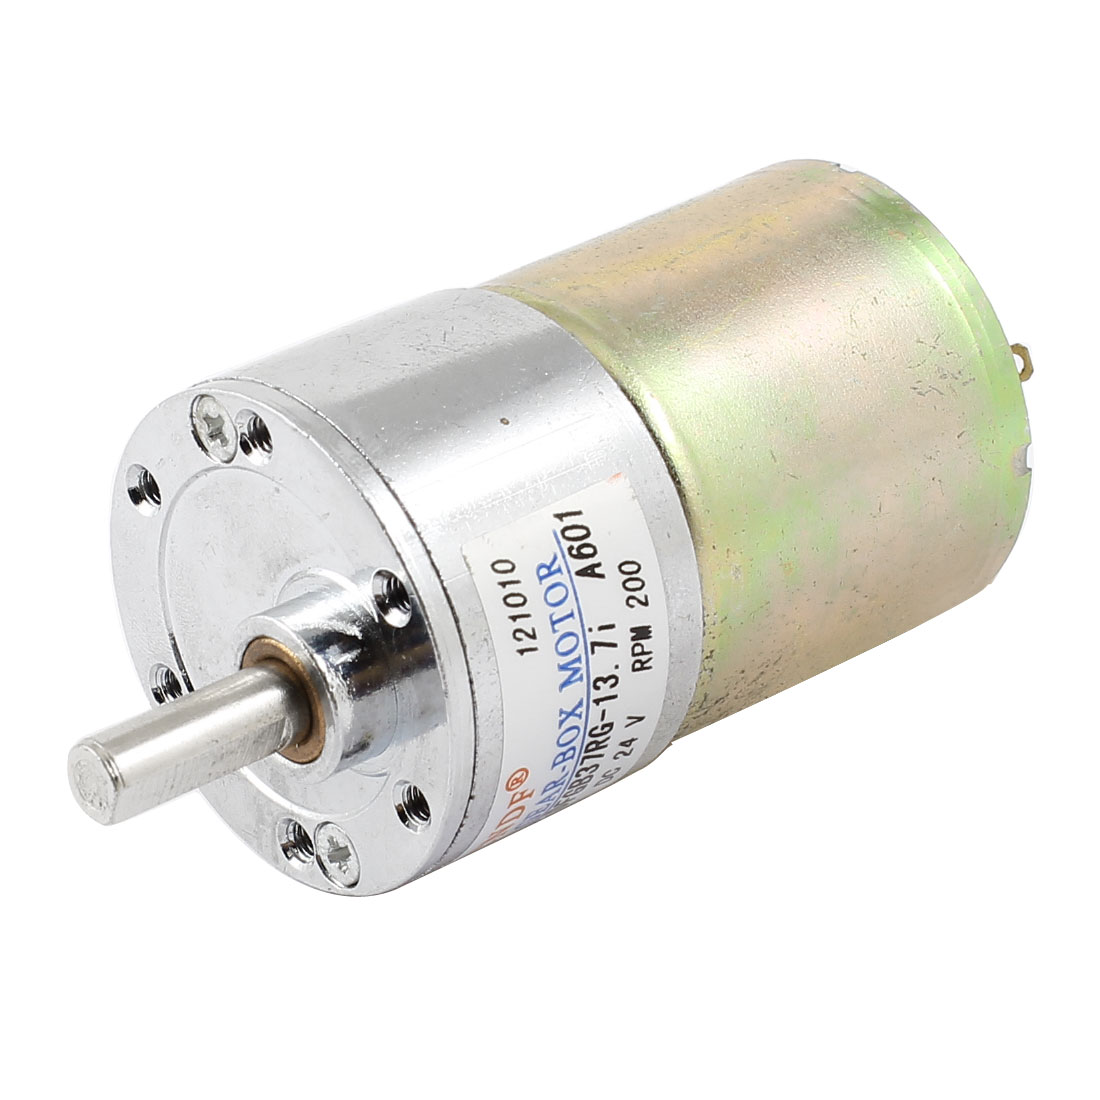 DC 24V 200RPM 6mm Shaft Electric Geared Box Speed Reduce Motor